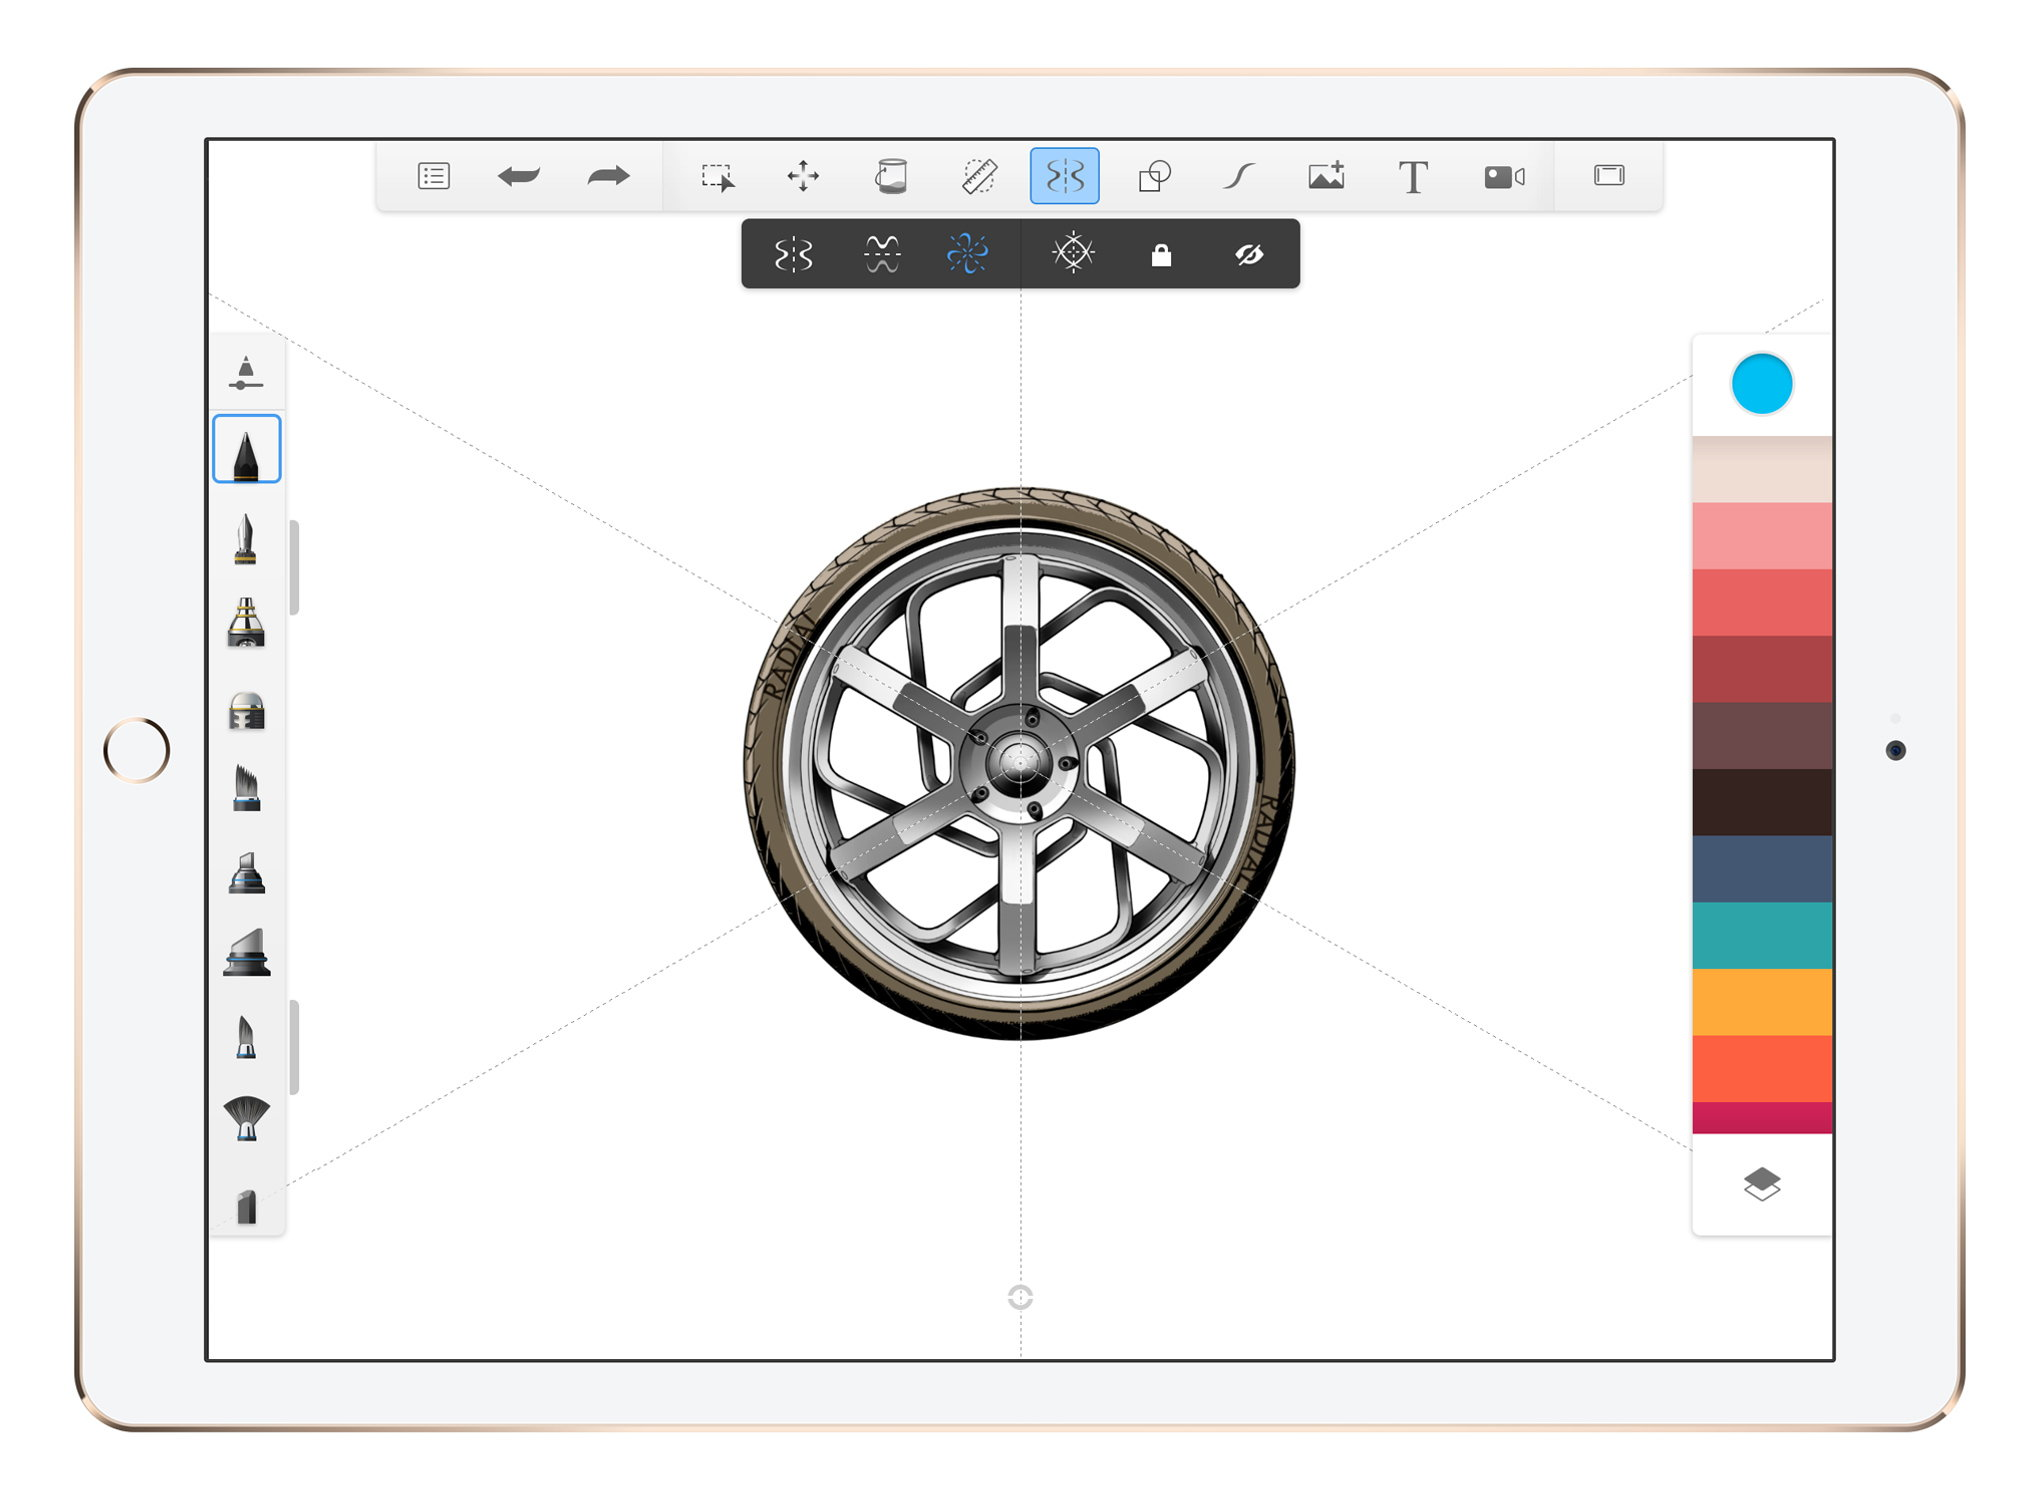 Autodesk SketchBook 4 for iOS